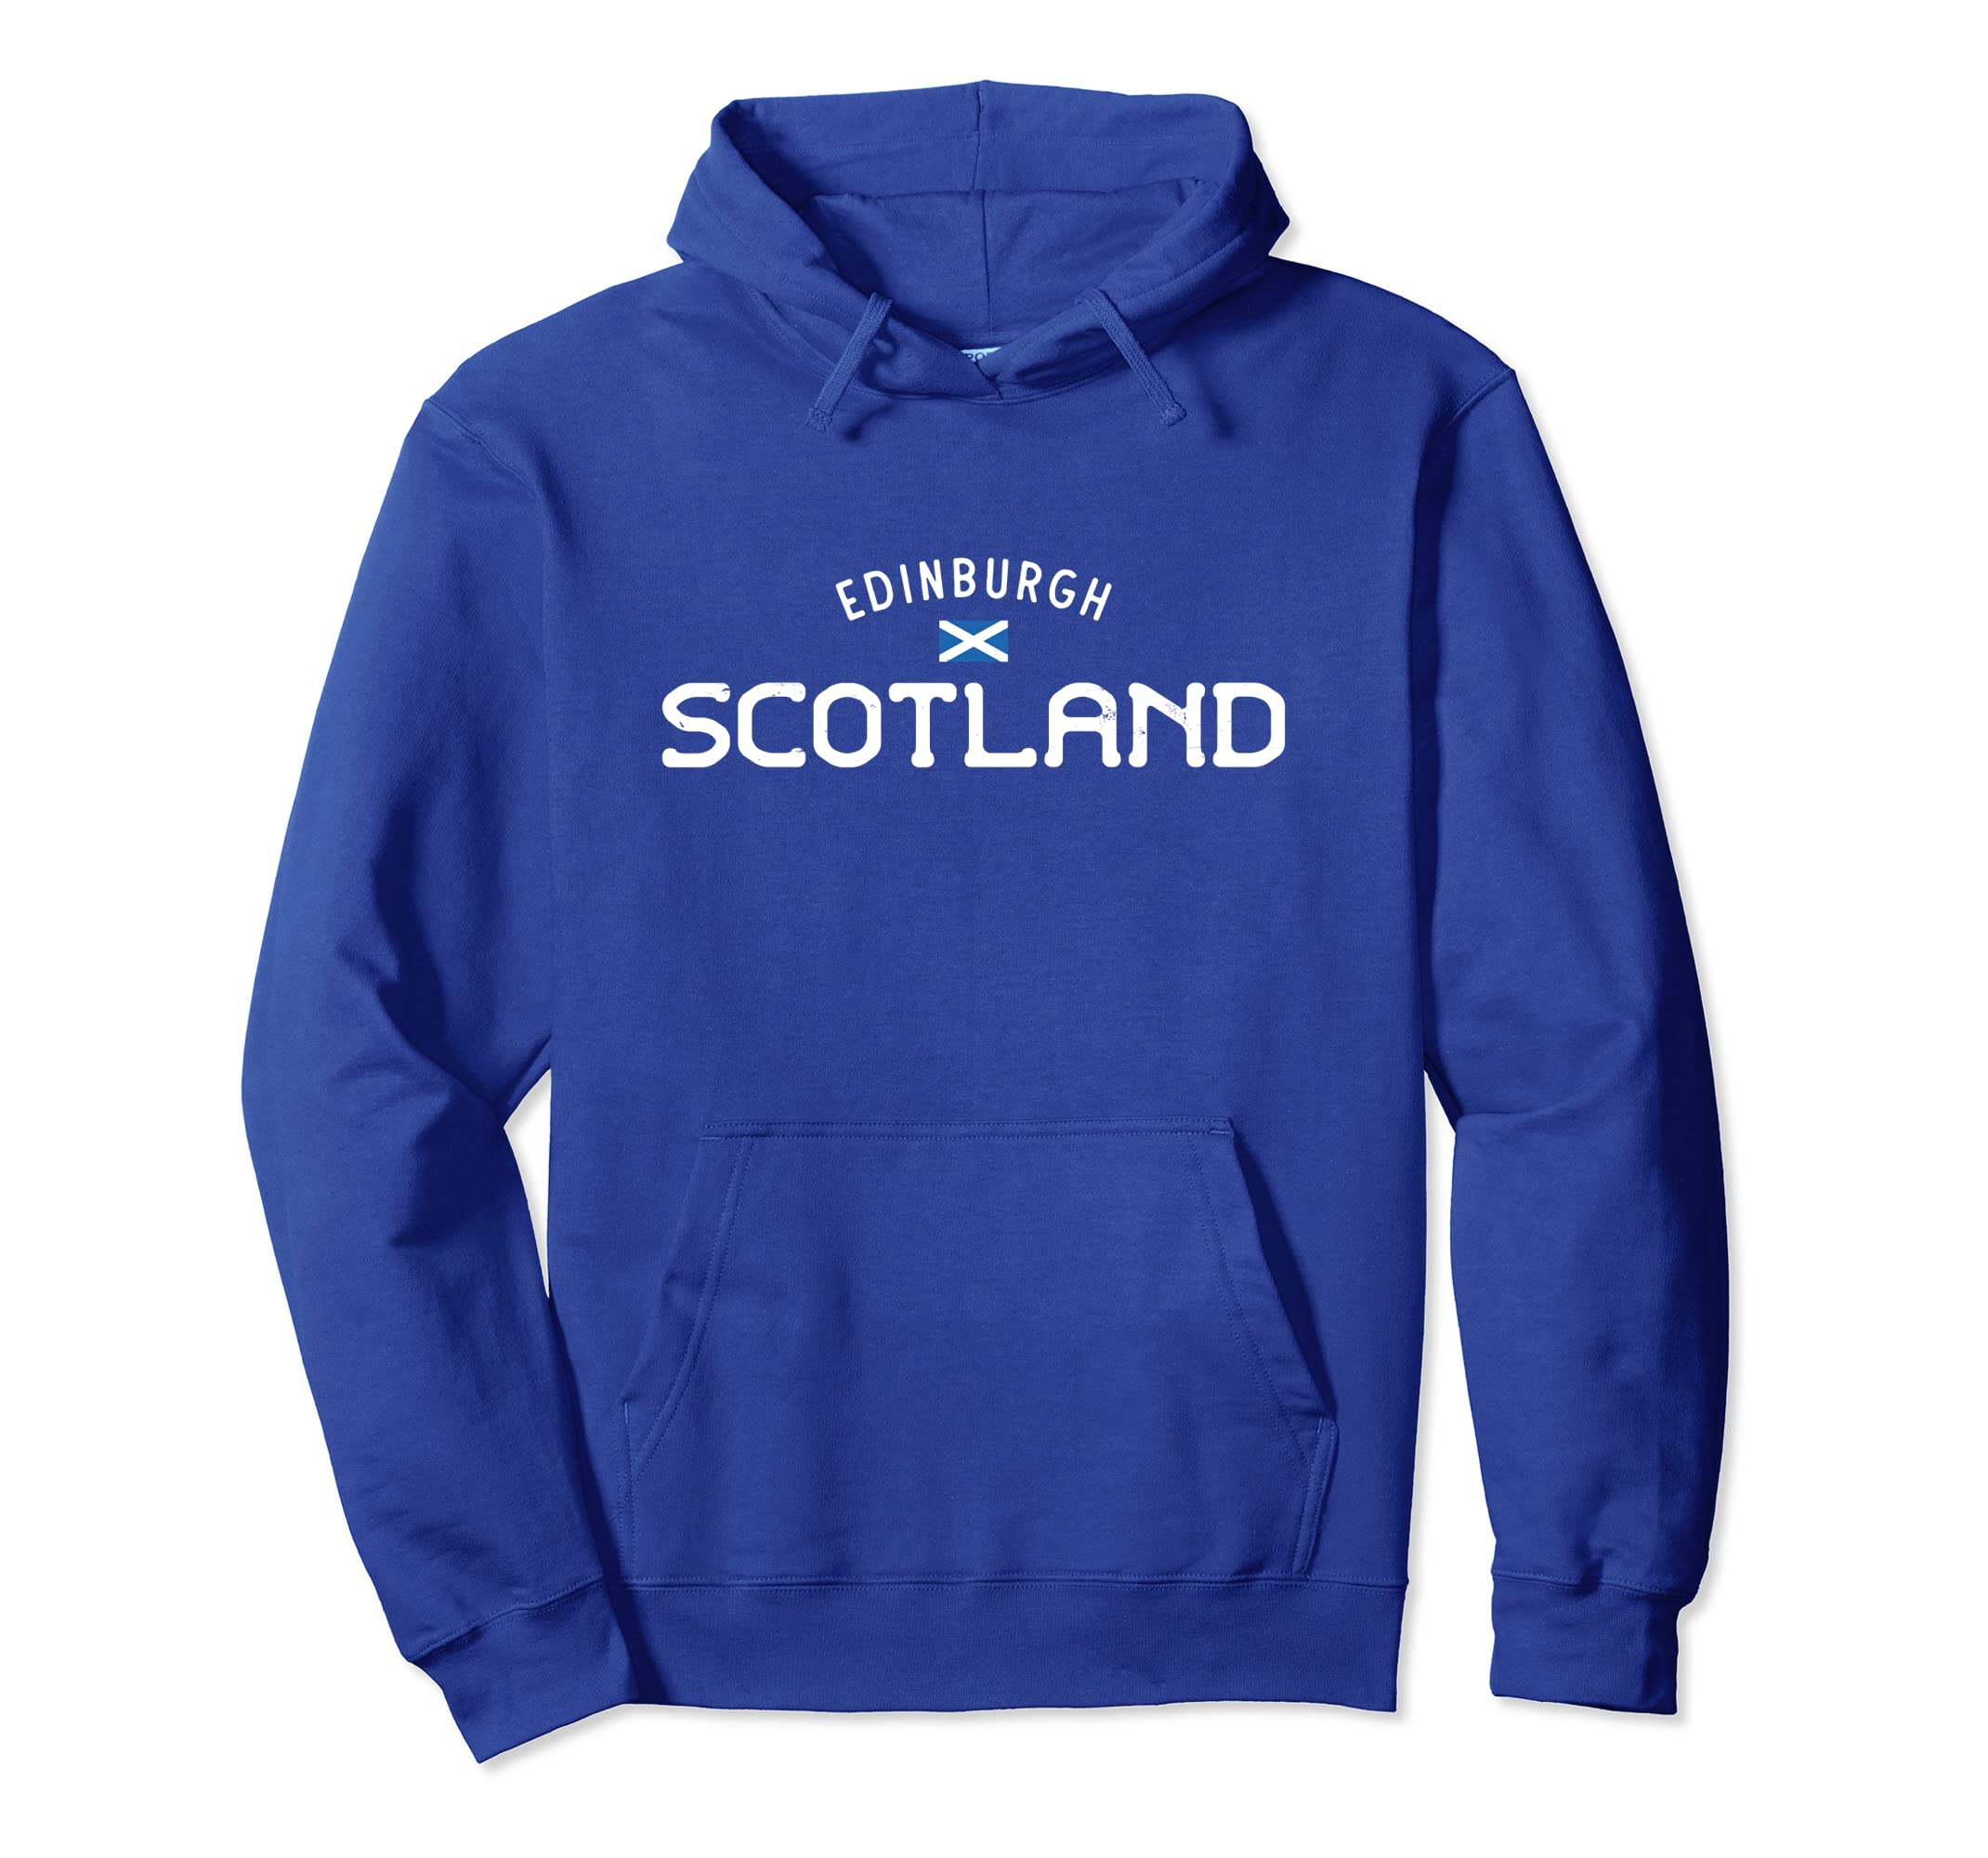 Edinburgh Scotland Hoodie With Distressed Scottish Design-Rose